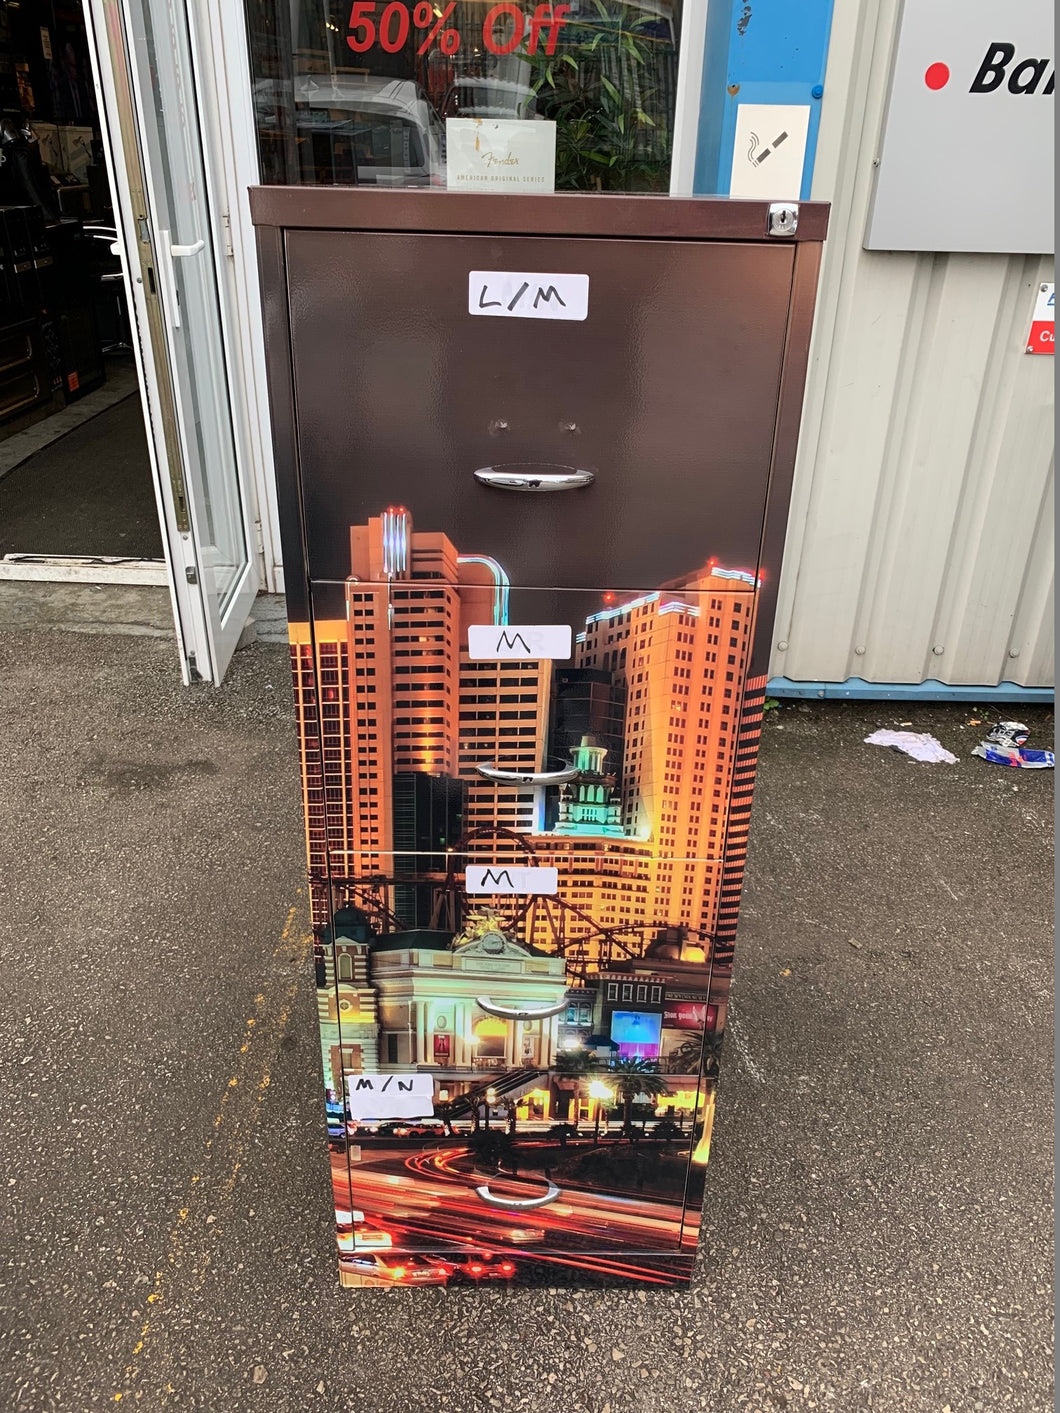 Las Vegas Themed 4 Drawer Filing Cabinet - Flogit2us.com